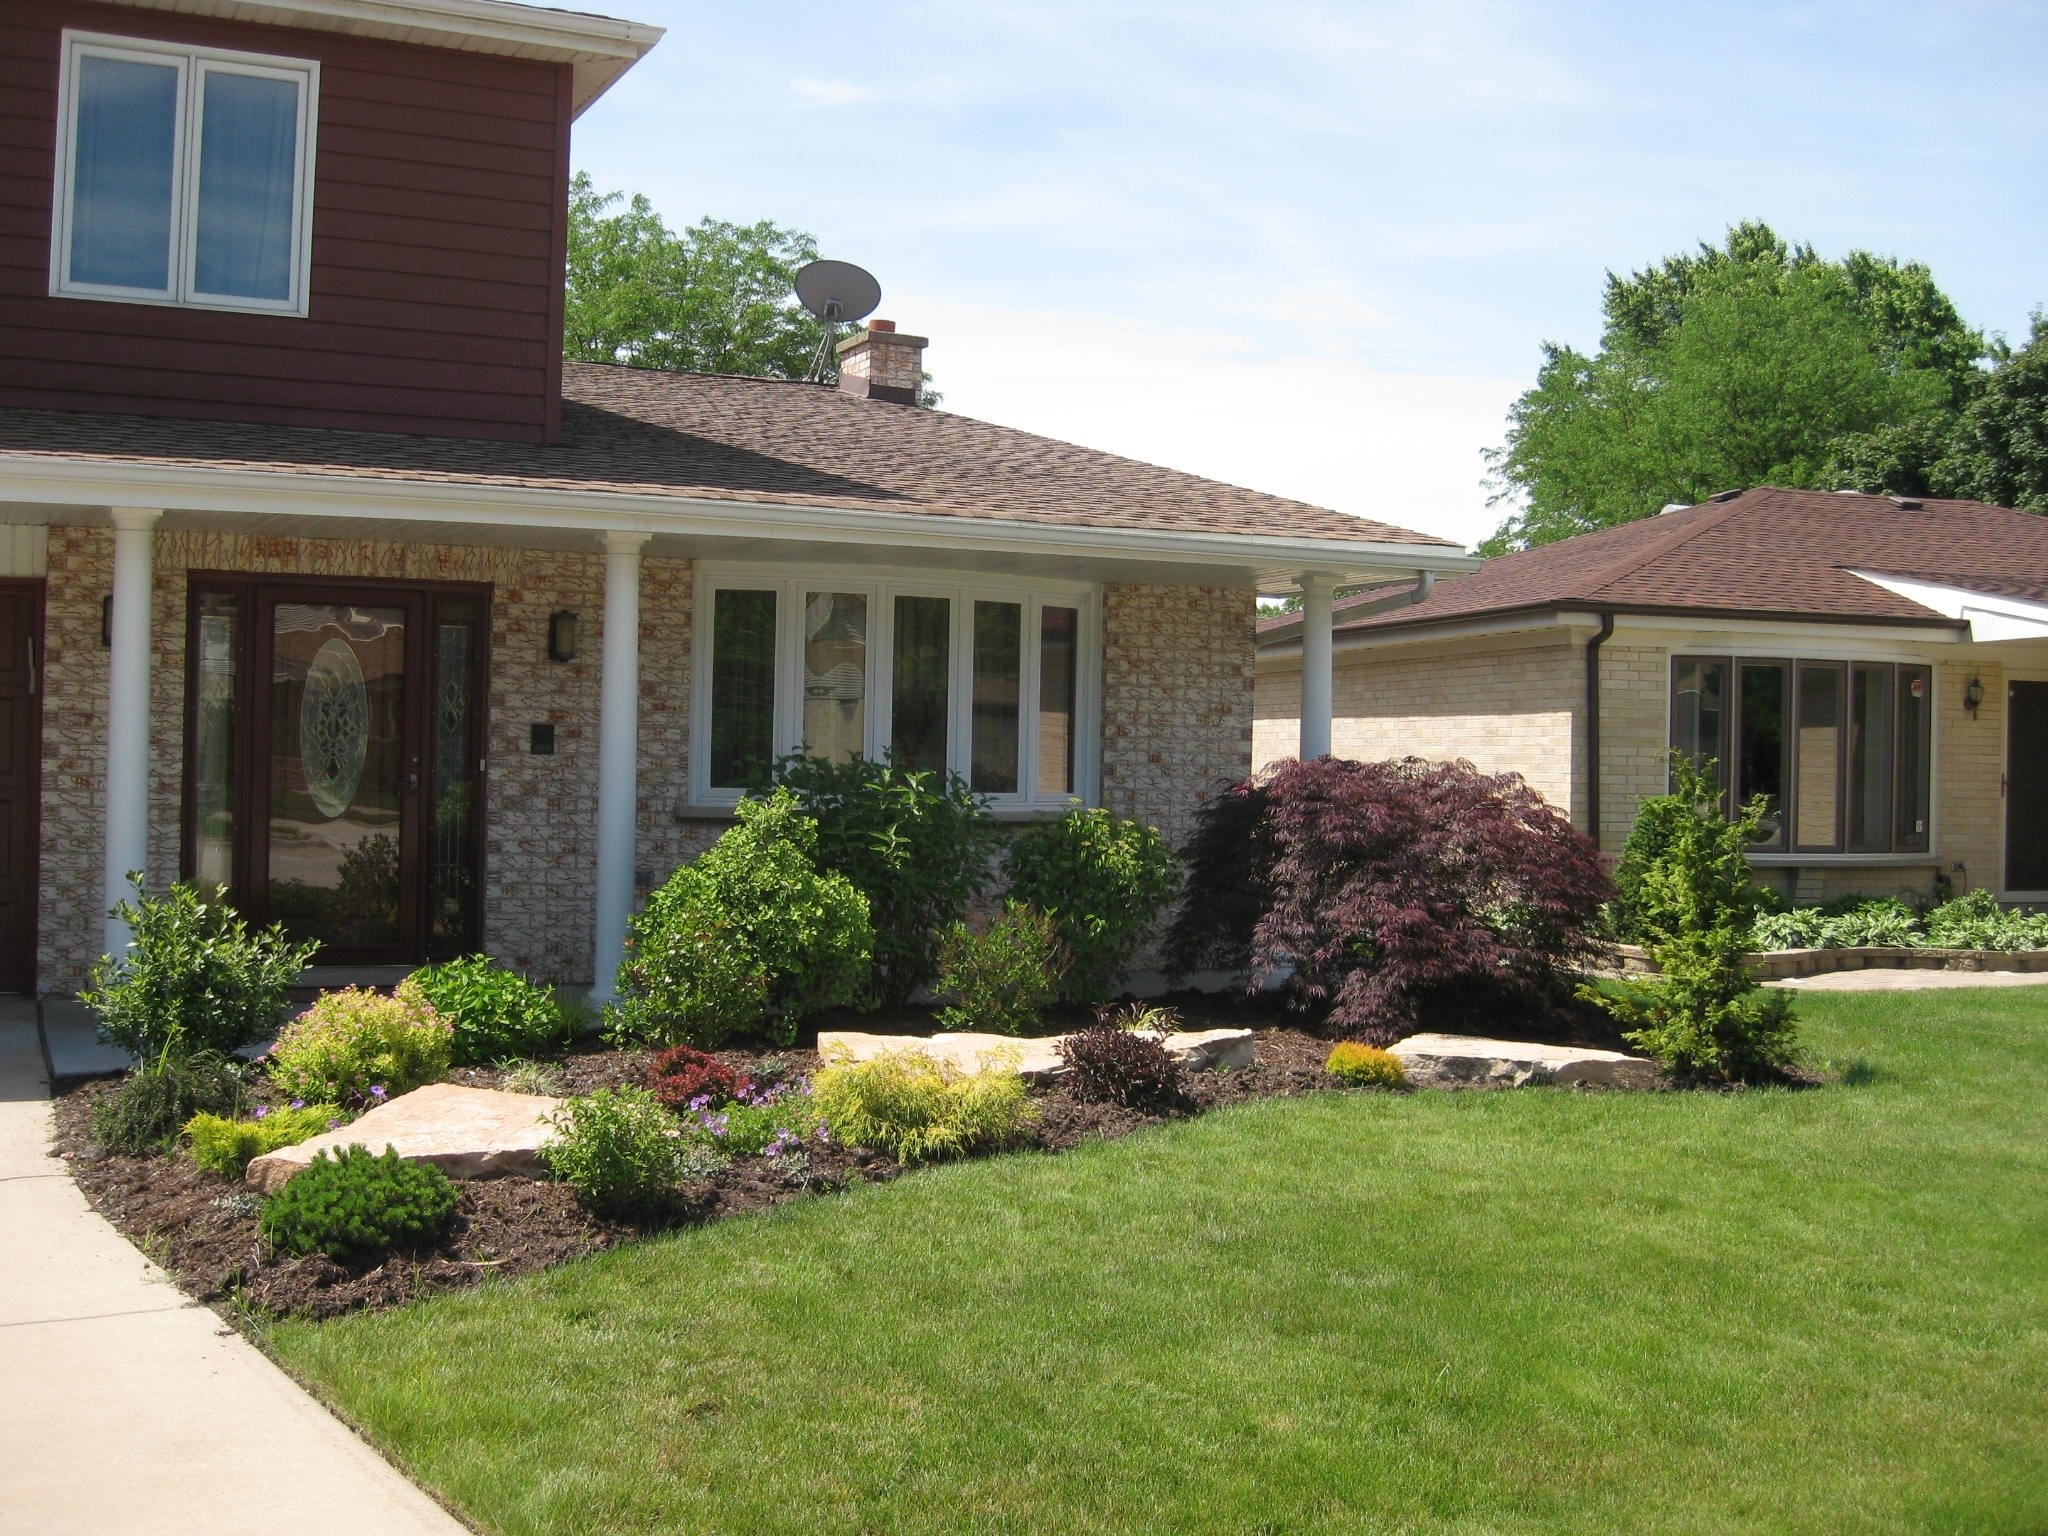 10 Great Landscaping Ideas For Front Of House front yard imposing landscape designs for front of house picture 2020